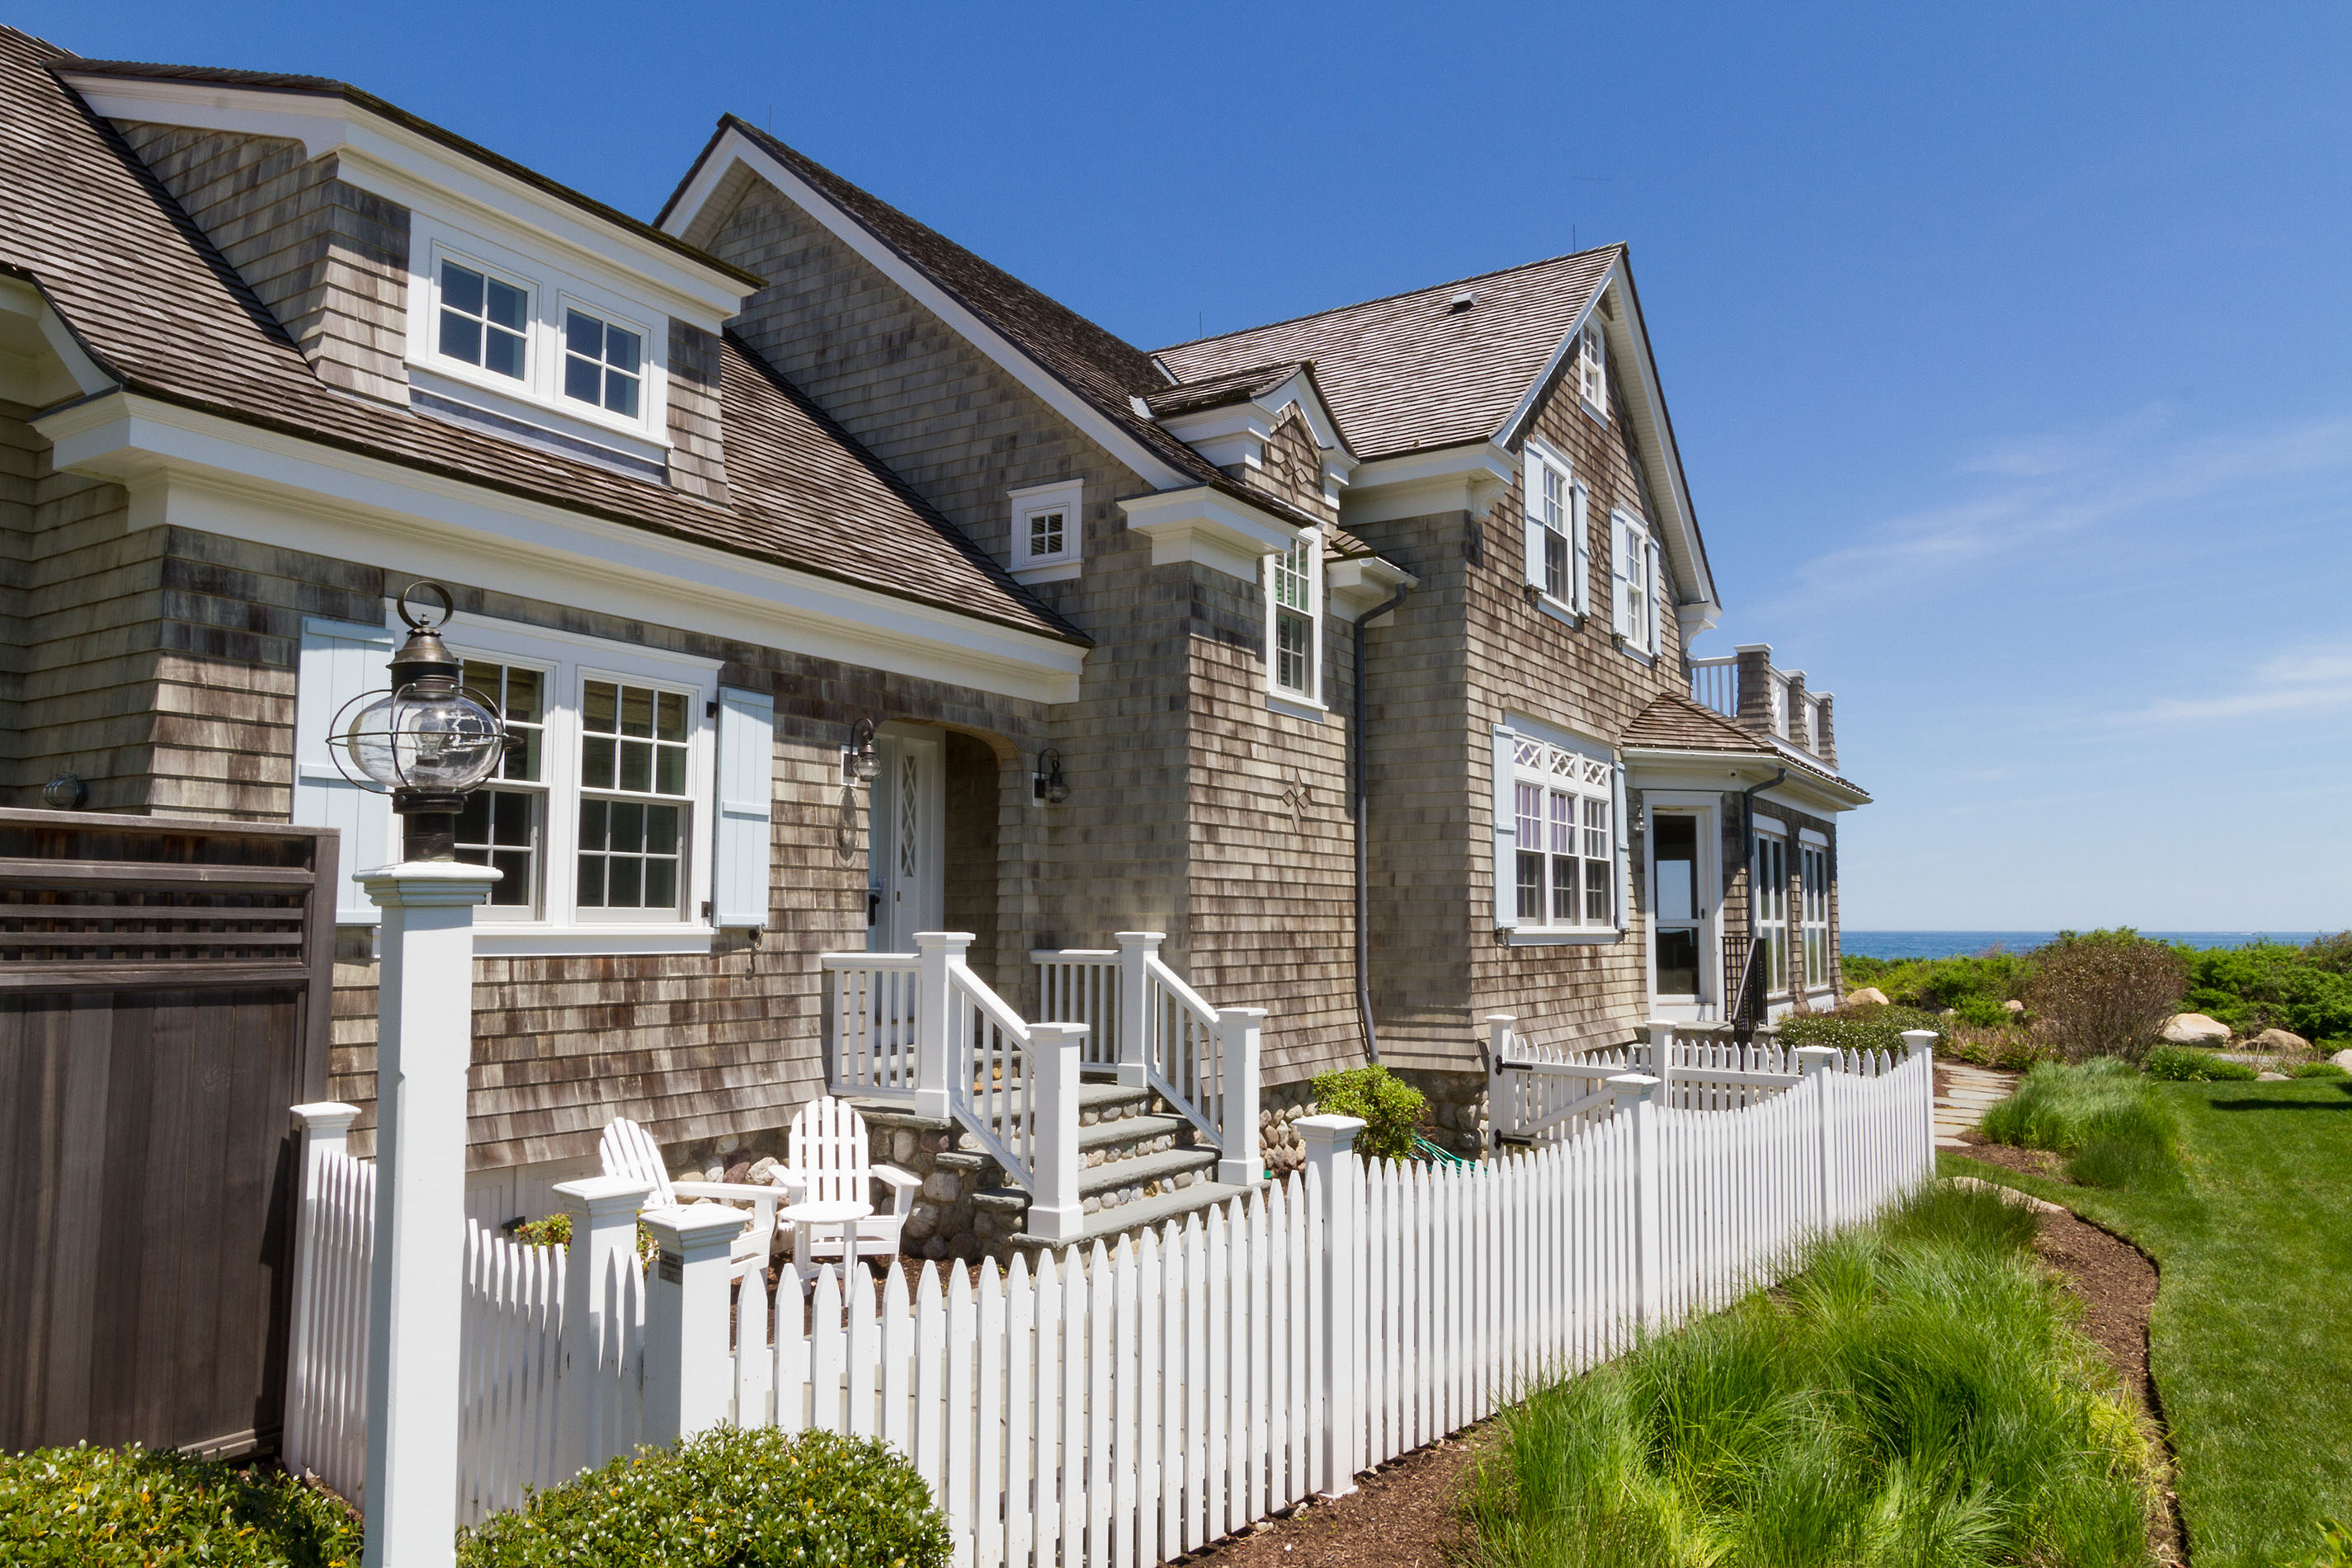 OFF-MARKET WATERFRONT HOME IN QUONNIE SELLS FOR $3.625M, MARKING HIGHEST SALE IN CHARLESTOWN SINCE SEPTEMBER 2017*